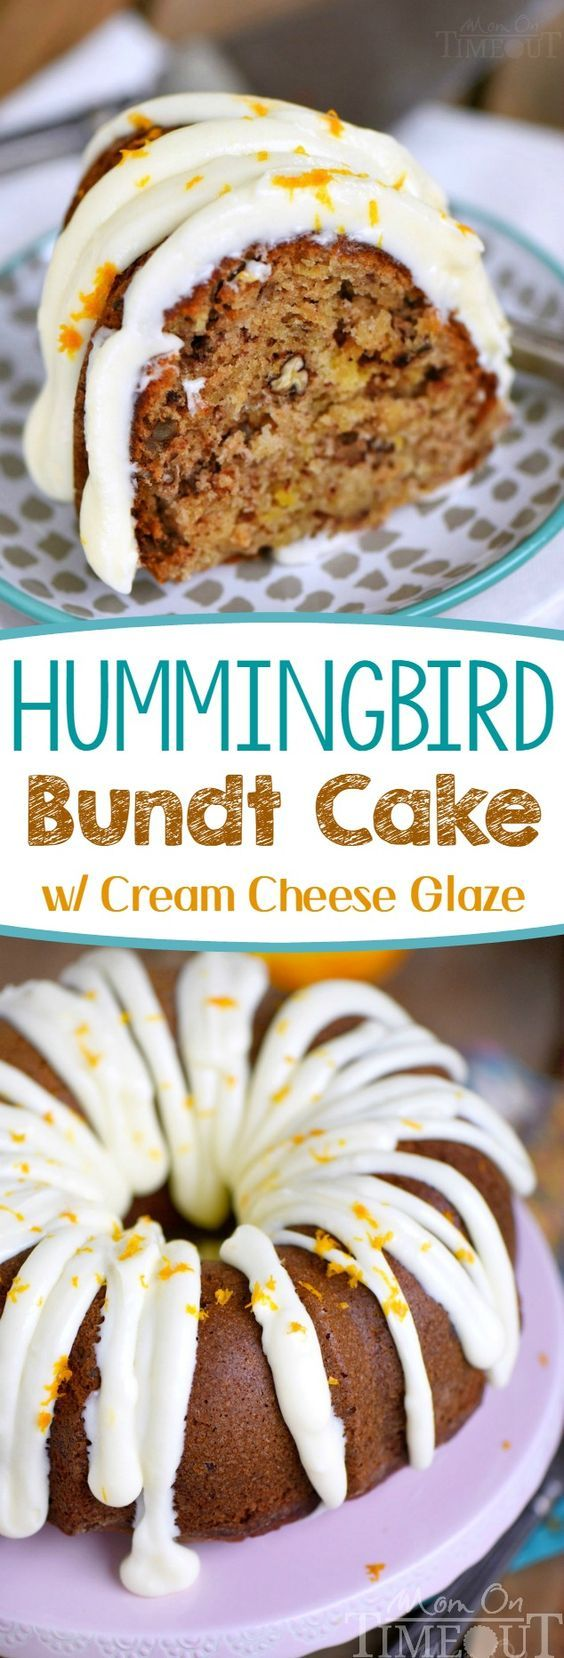 Easy Pineapple Humming Bird Bundt Cake